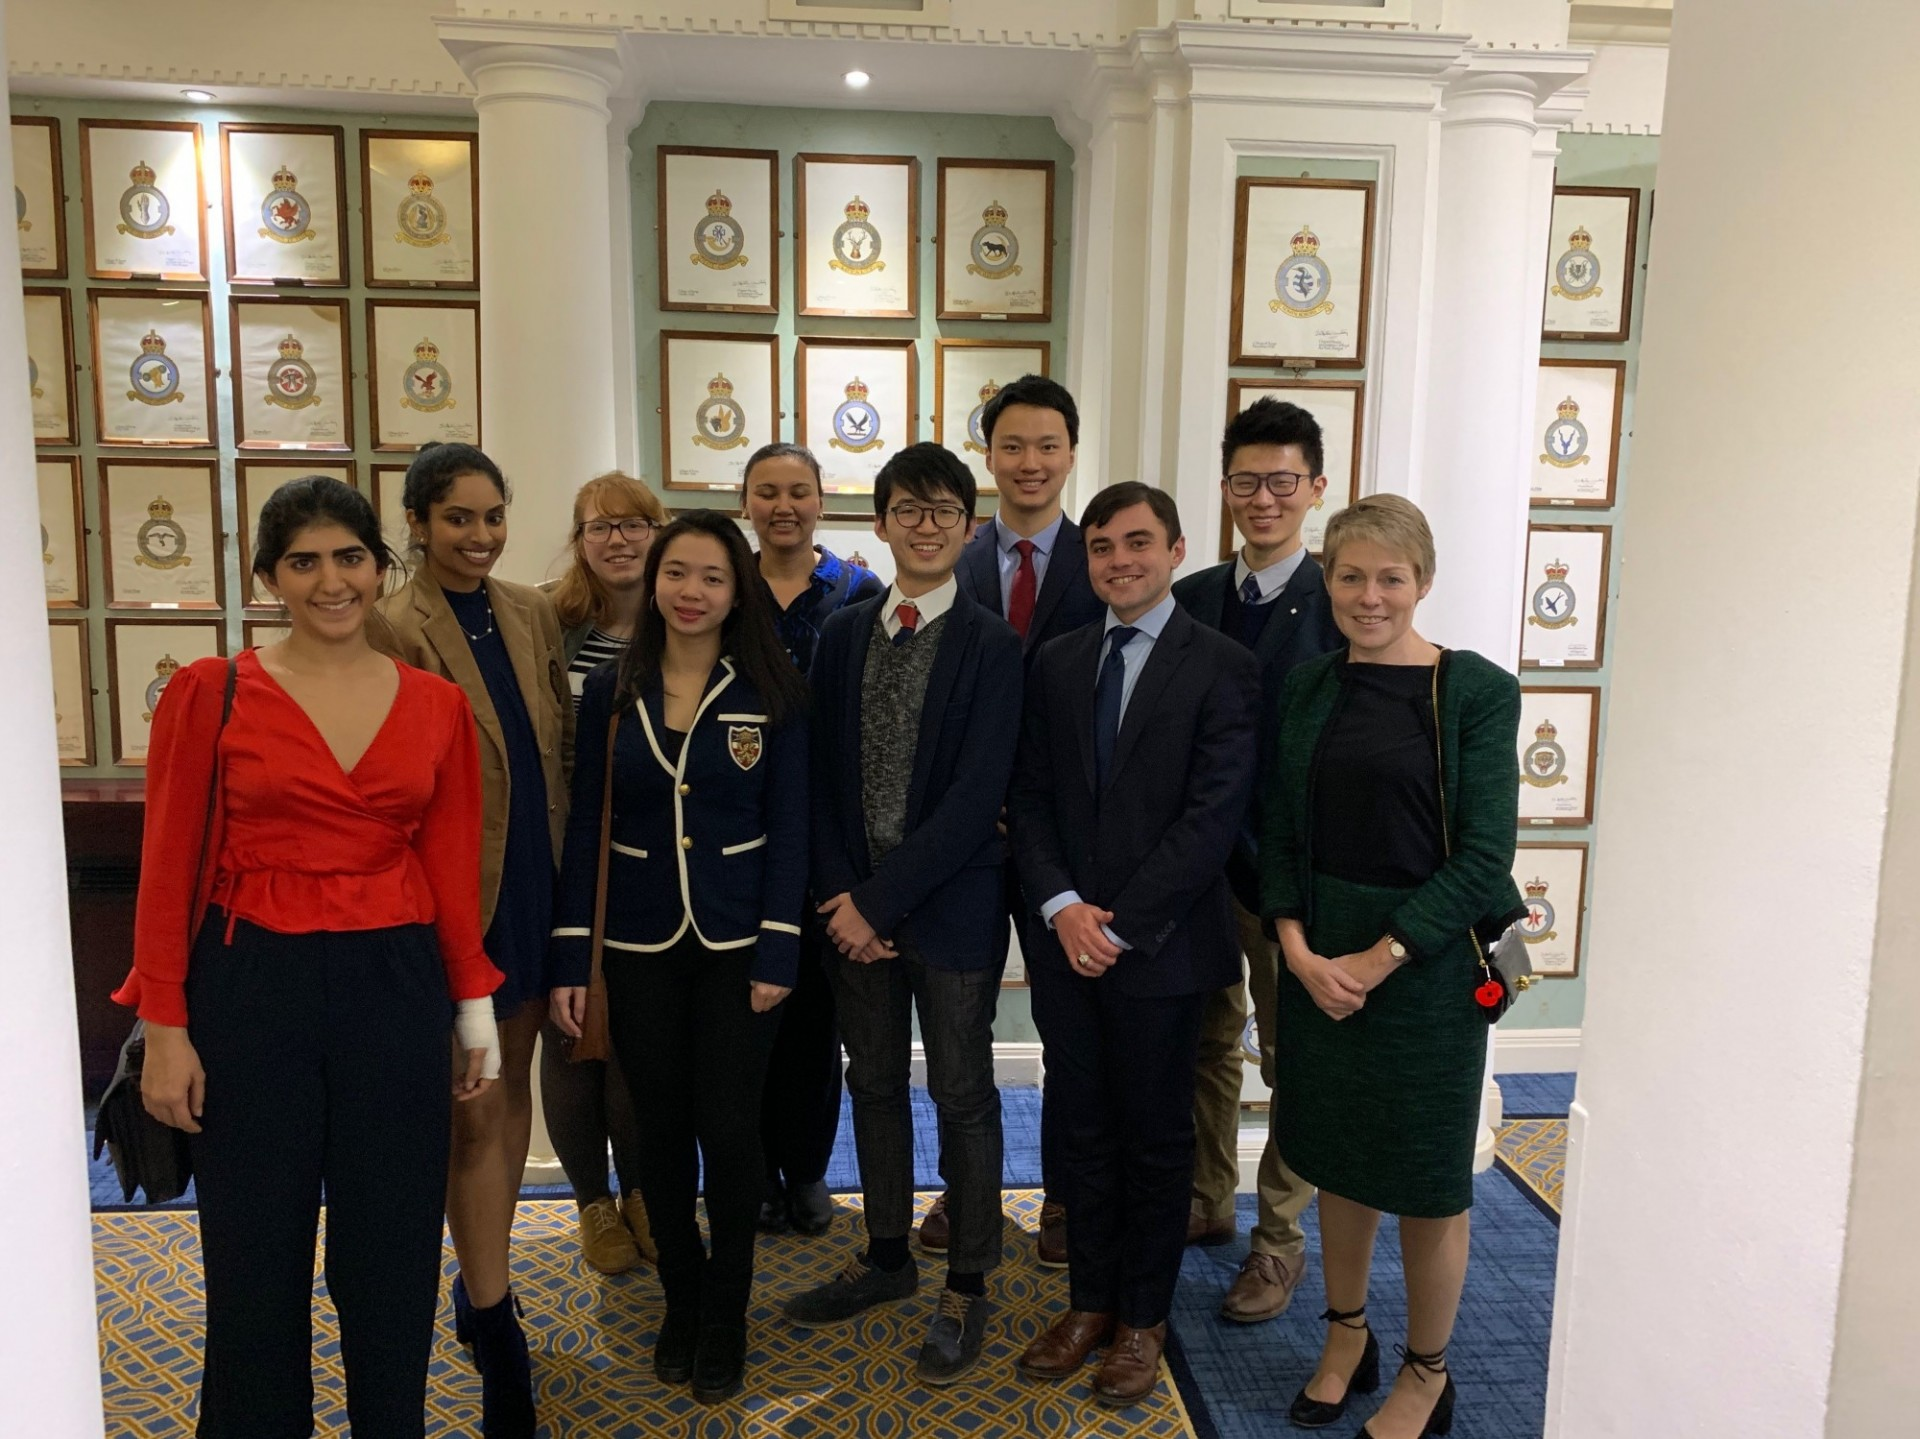 CWAR Fellows and Professor Victoria Phillips at the Royal Air Force Club